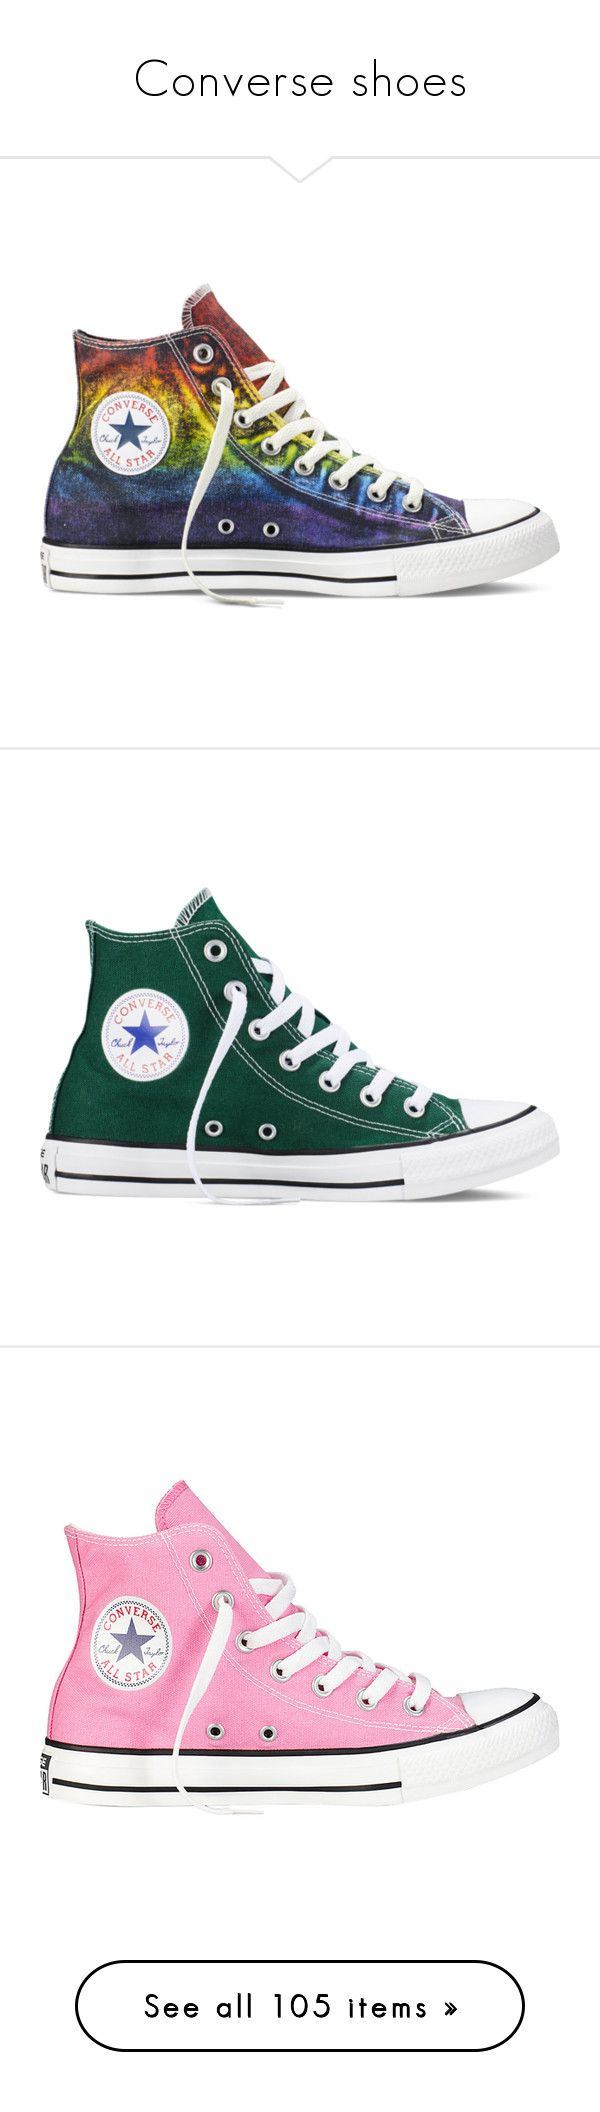 """""""Converse shoes"""" by xo-panda-xo ❤ liked on Polyvore featuring shoes, sneakers, converse, rainbow, red sneakers, red high top shoes, purple shoes, high top shoes, red high tops and green"""